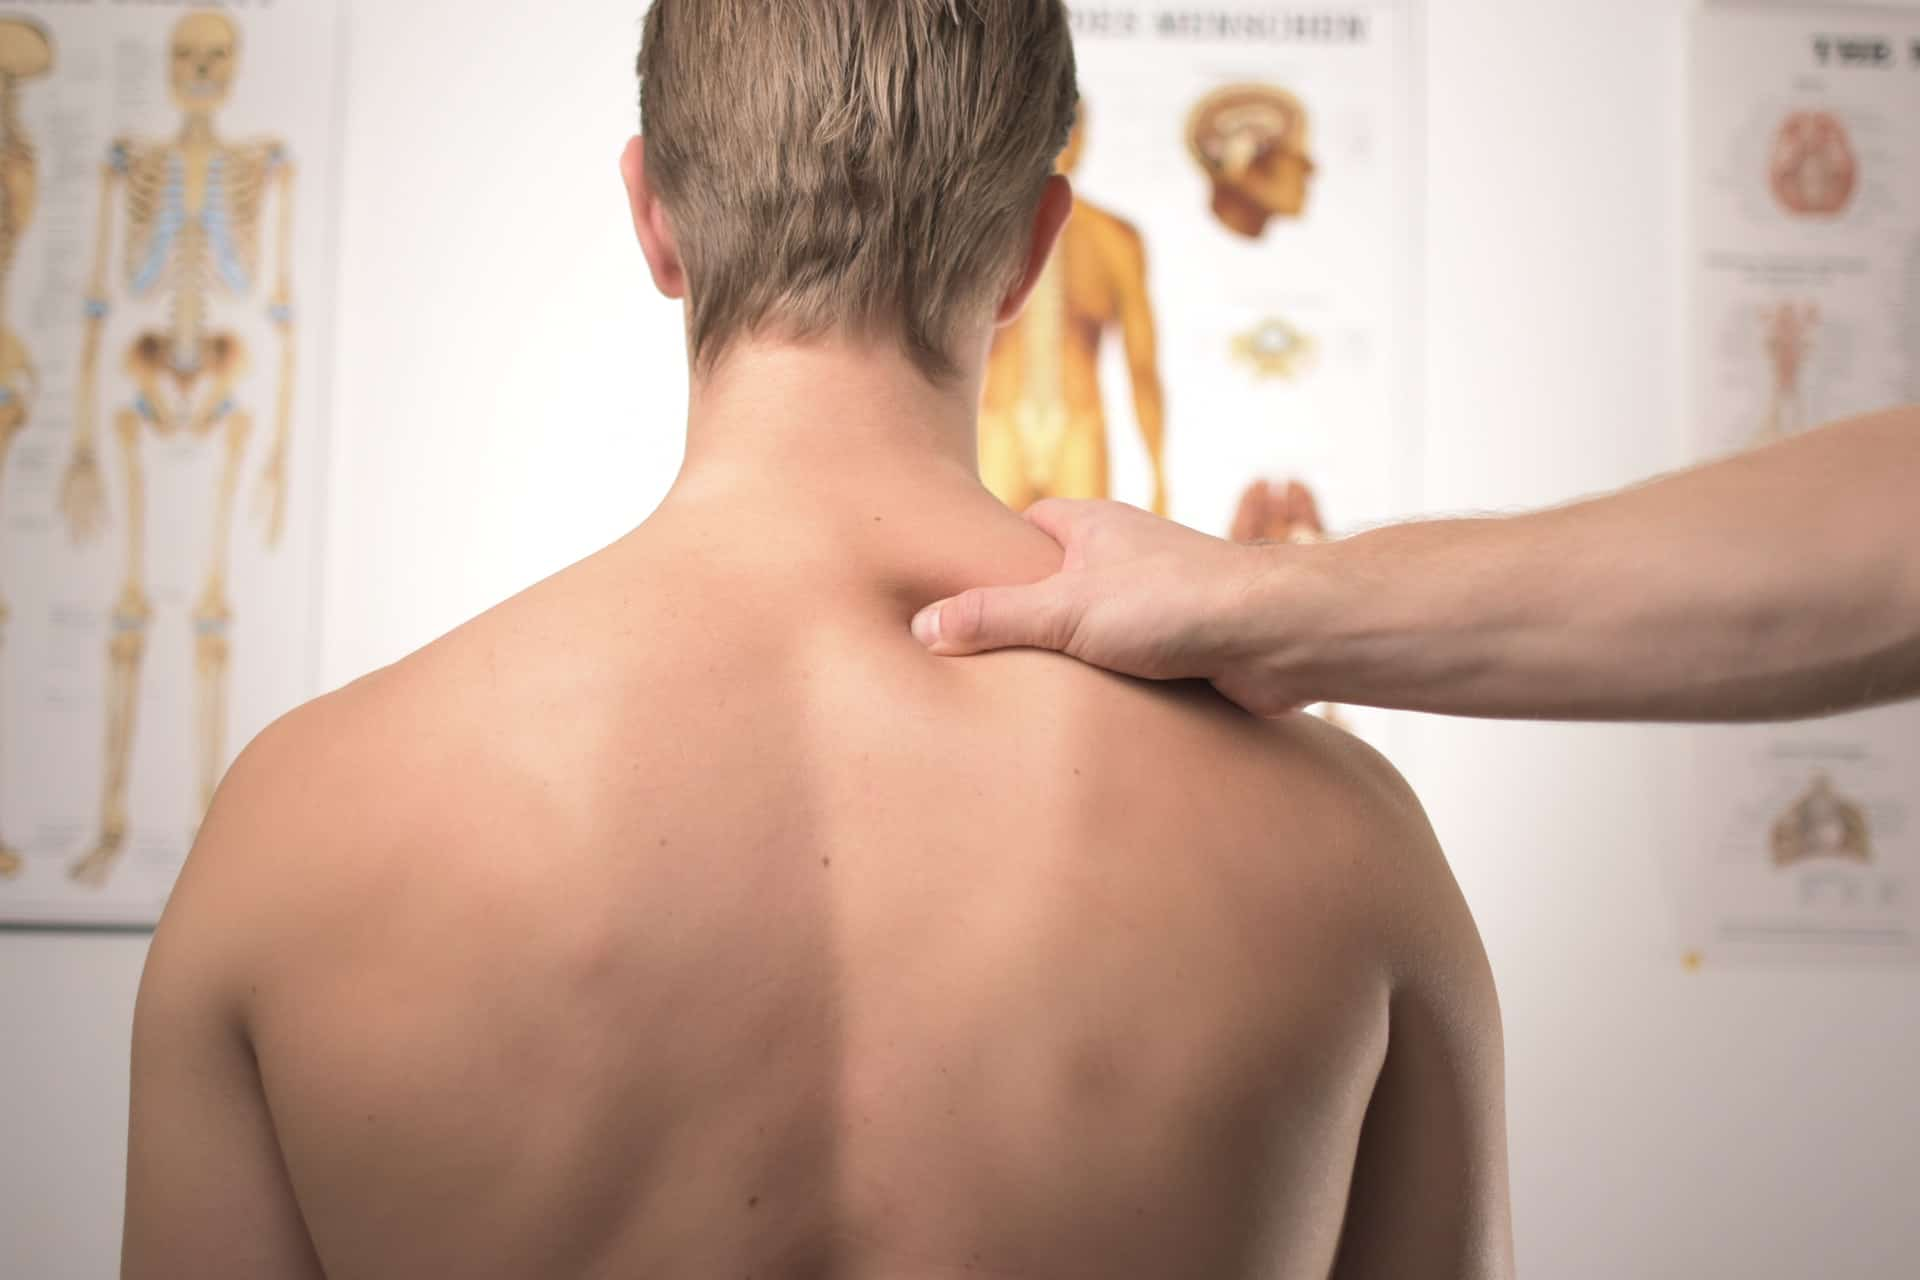 How To Relieve a Pinched Nerve in the Neck